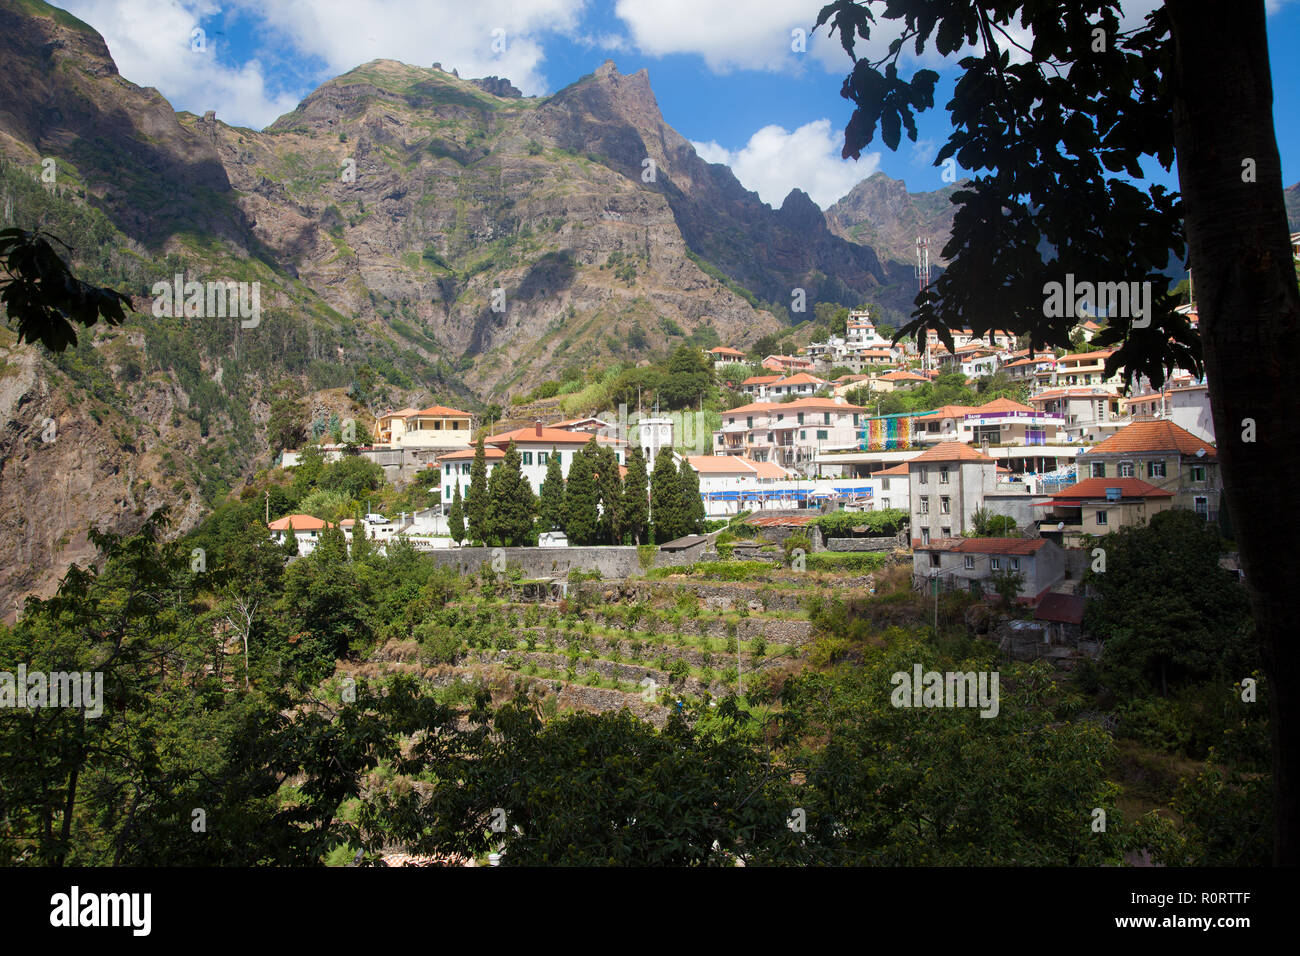 View of  the village Curral das freiras, Madeira Island, Portugal - Stock Image